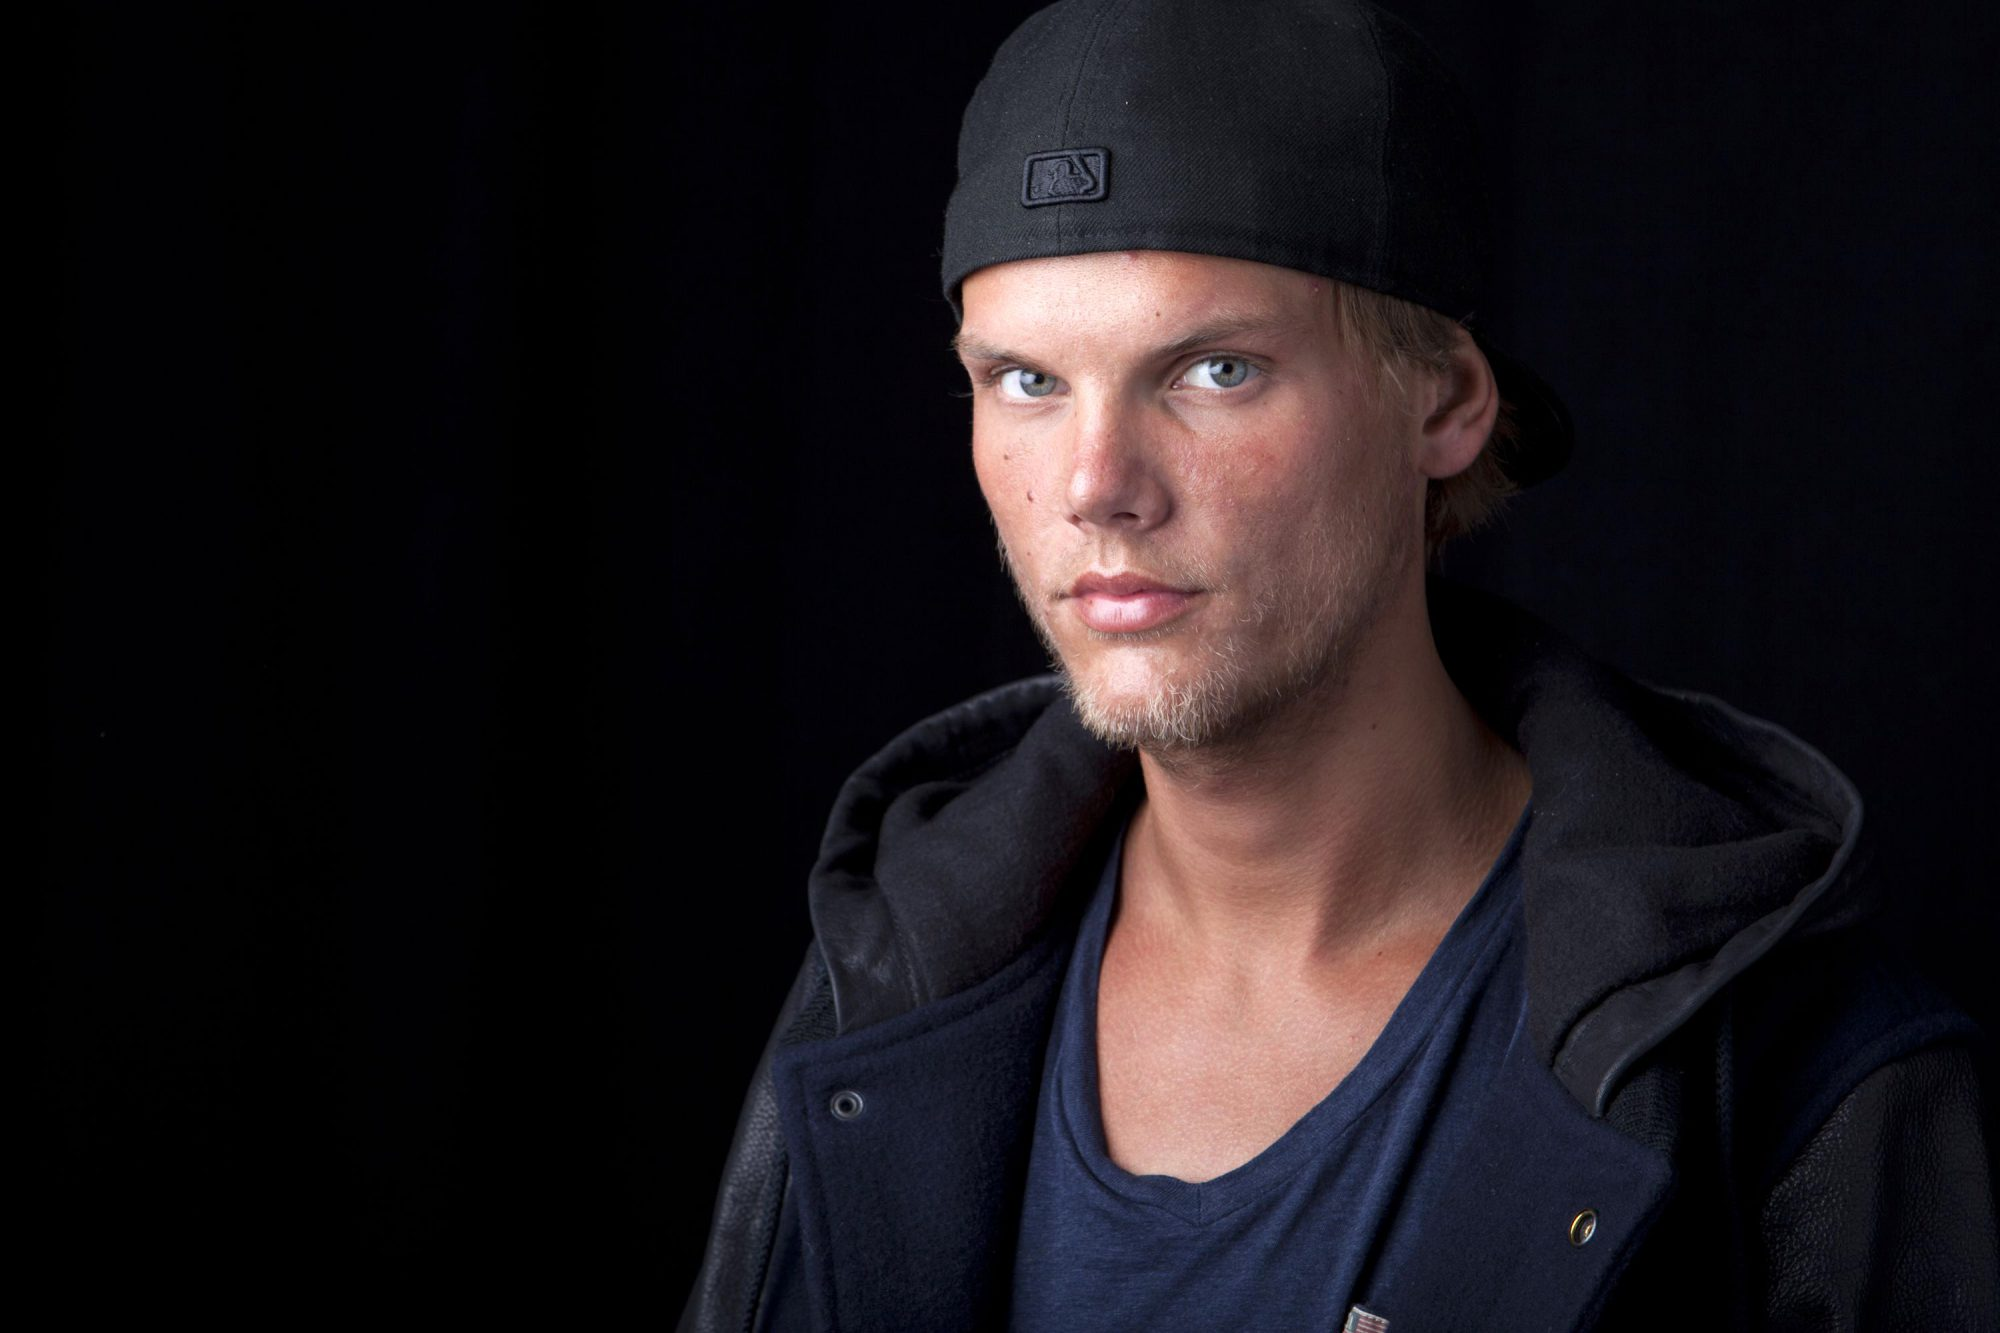 New Single 'SOS' From Avicii